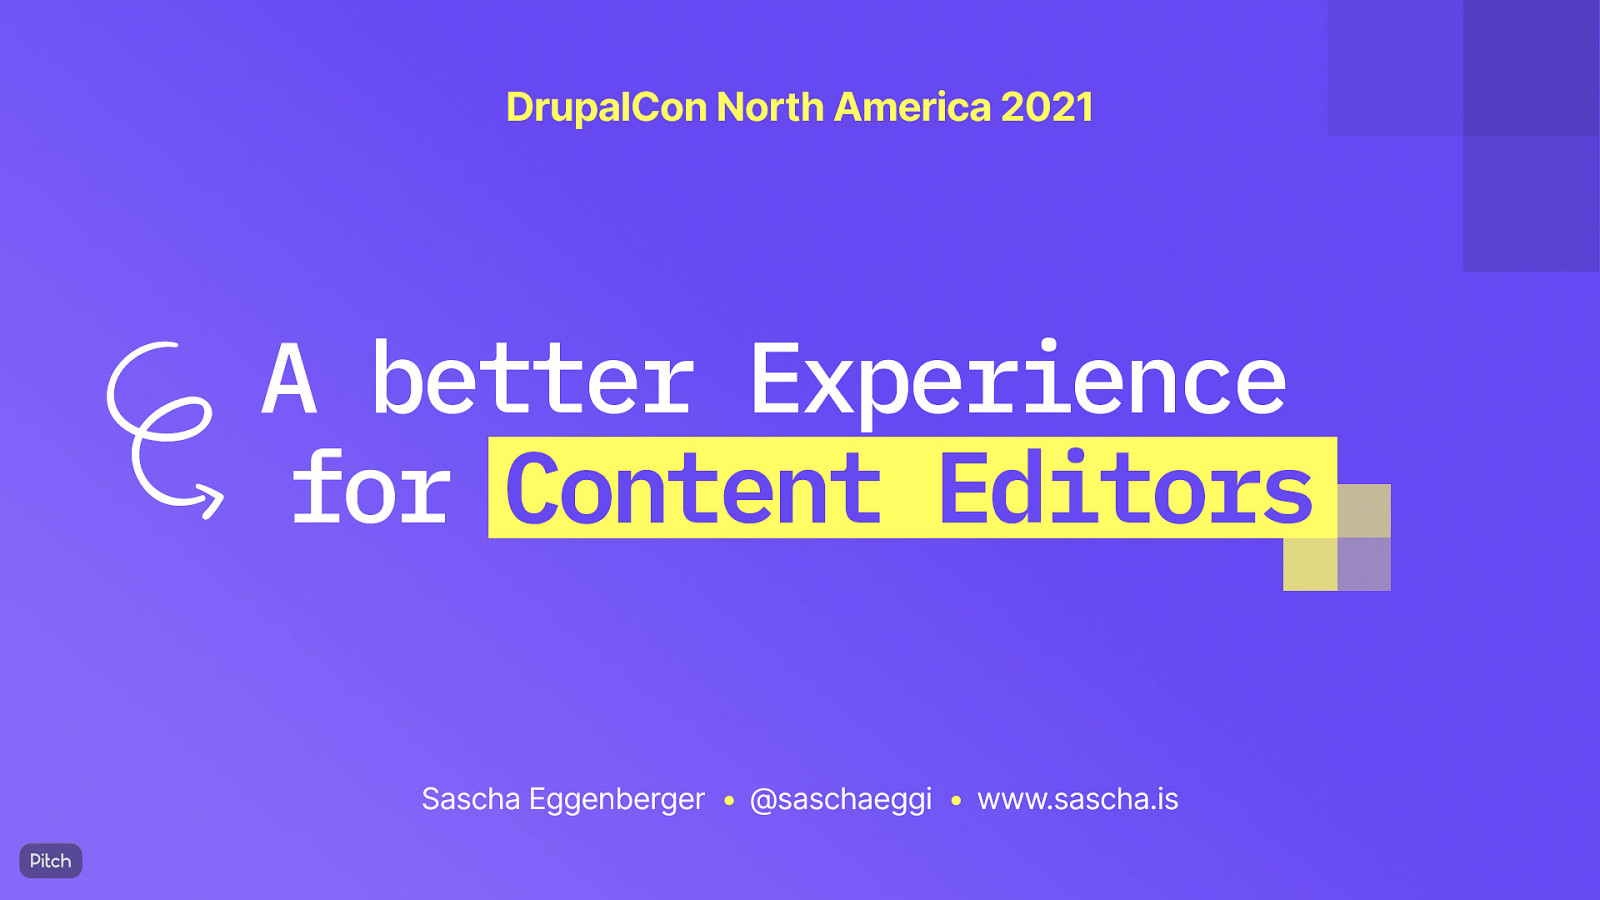 A better Experience for Content Editors